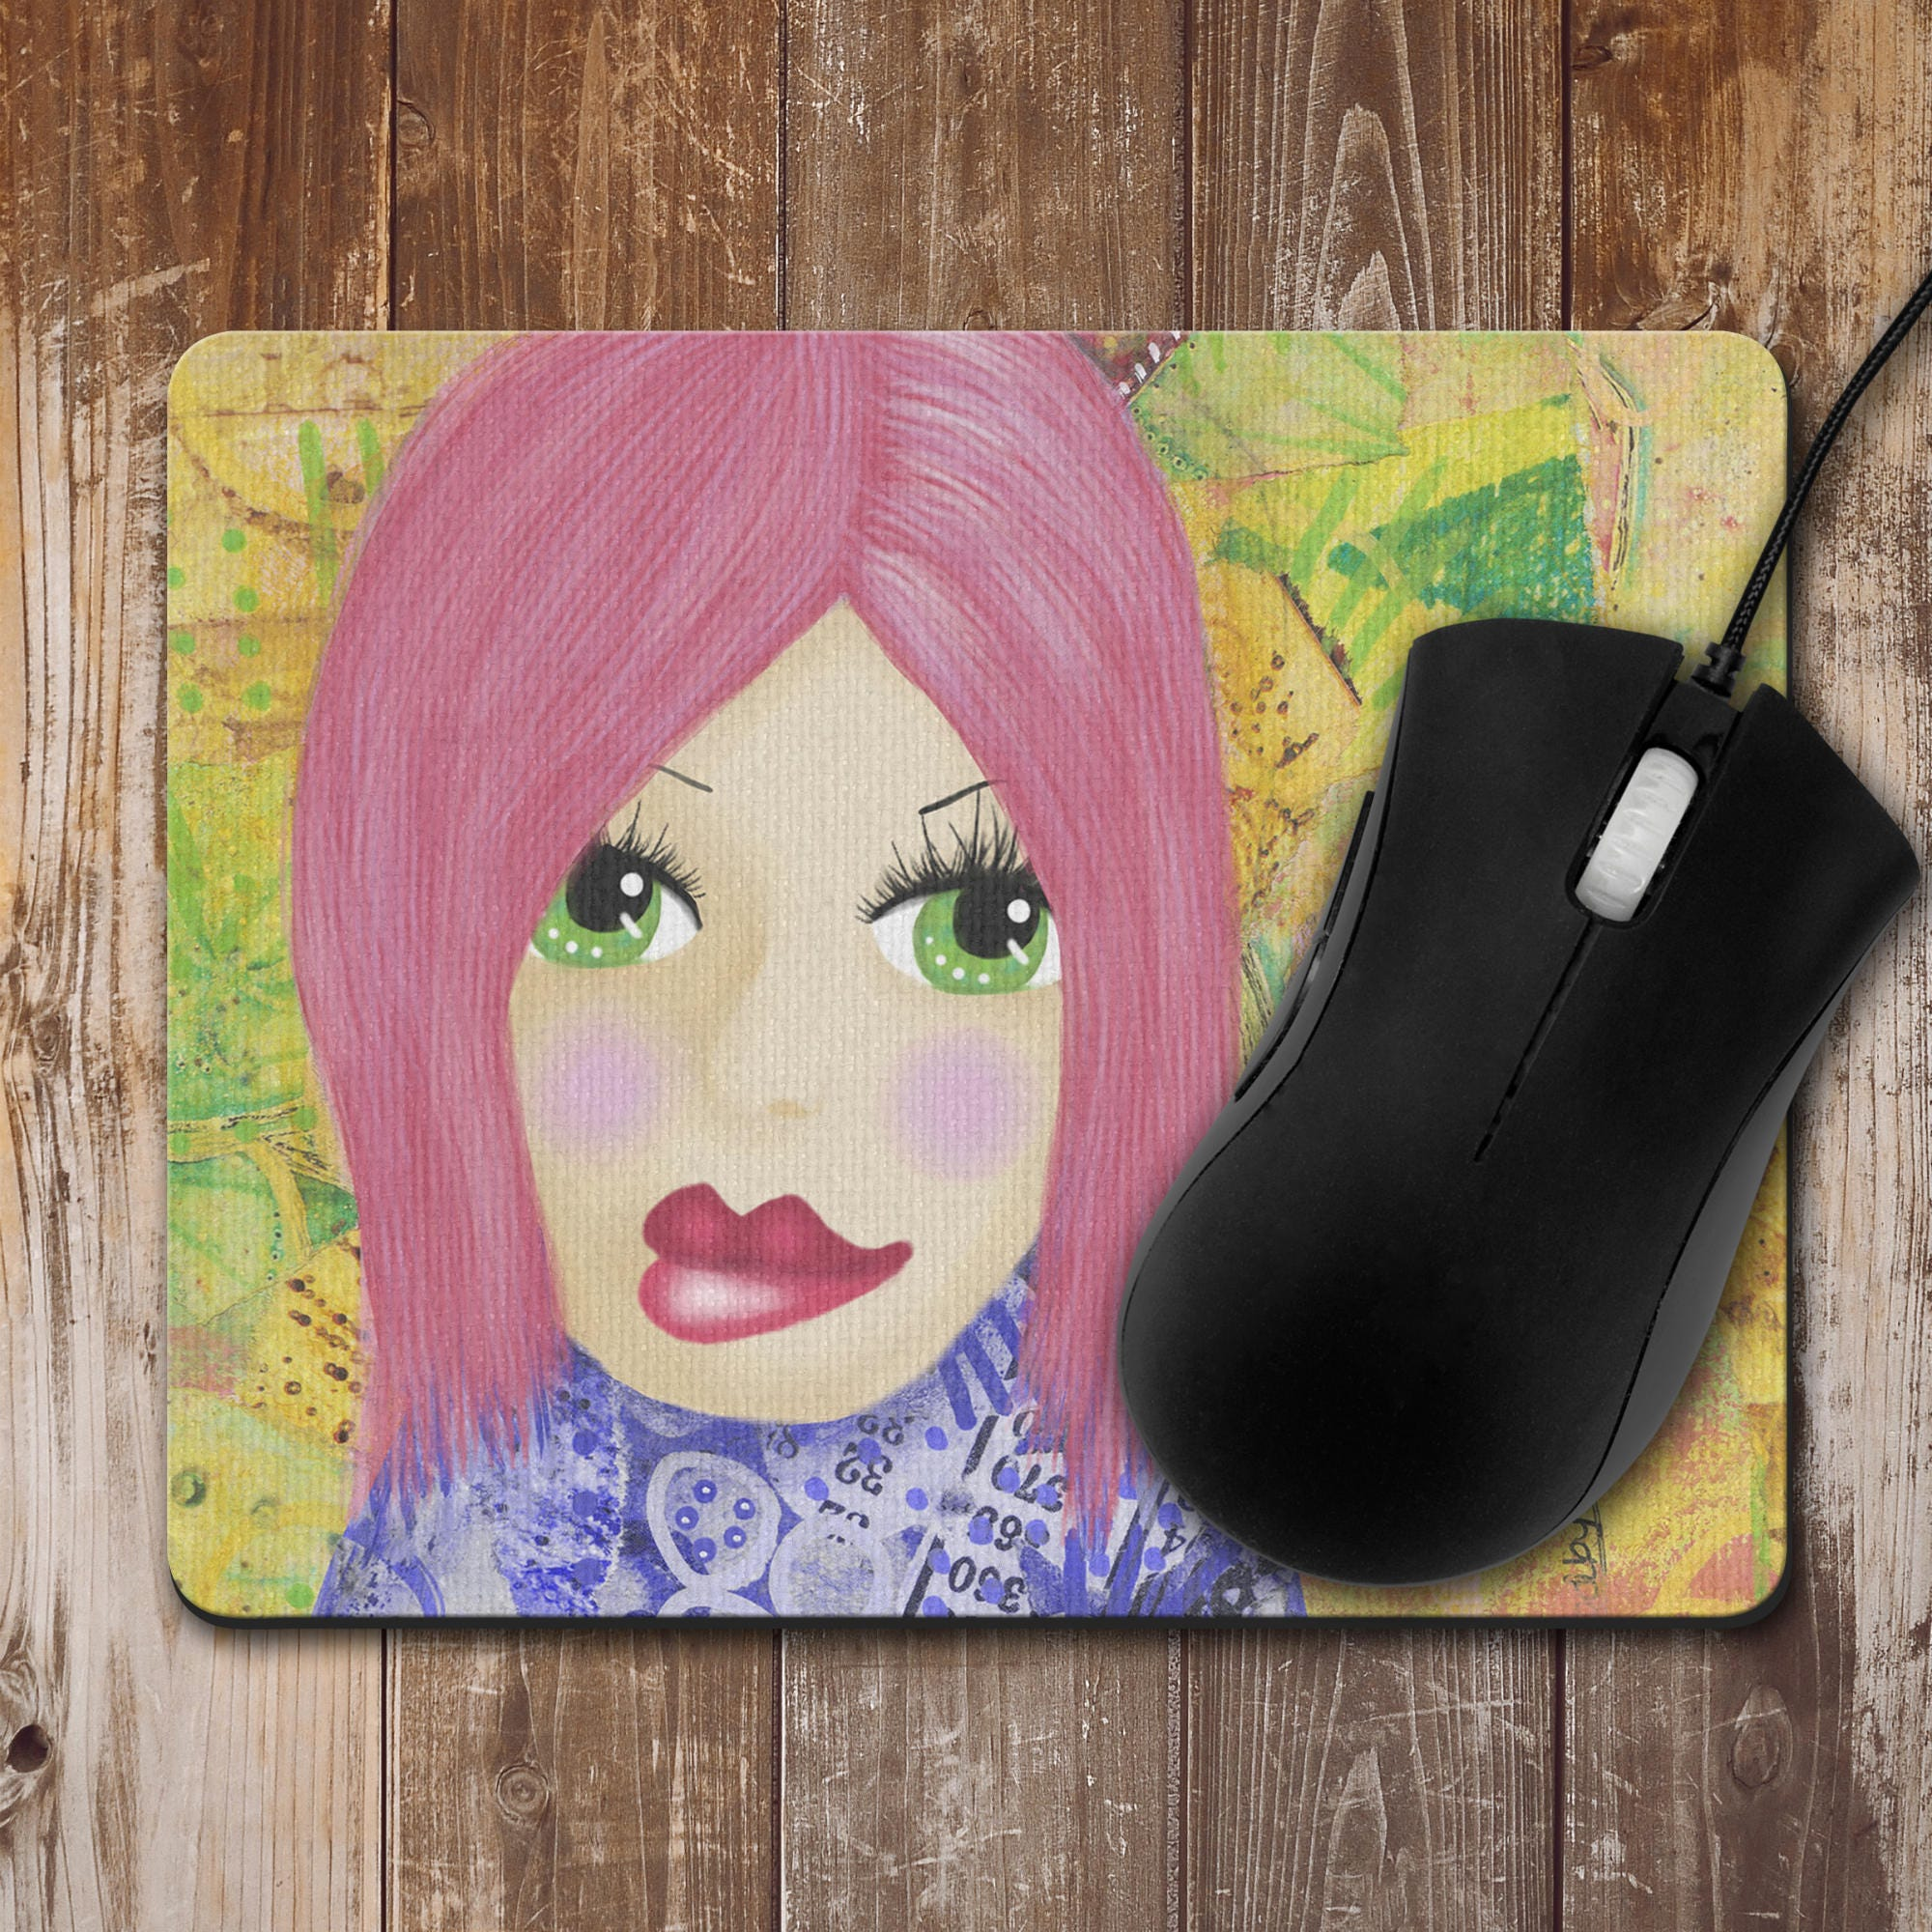 mouse pad mousepad mouse mat new home gift unique mousepad new house gift cute mouse pad art gifts desk accessories office decor